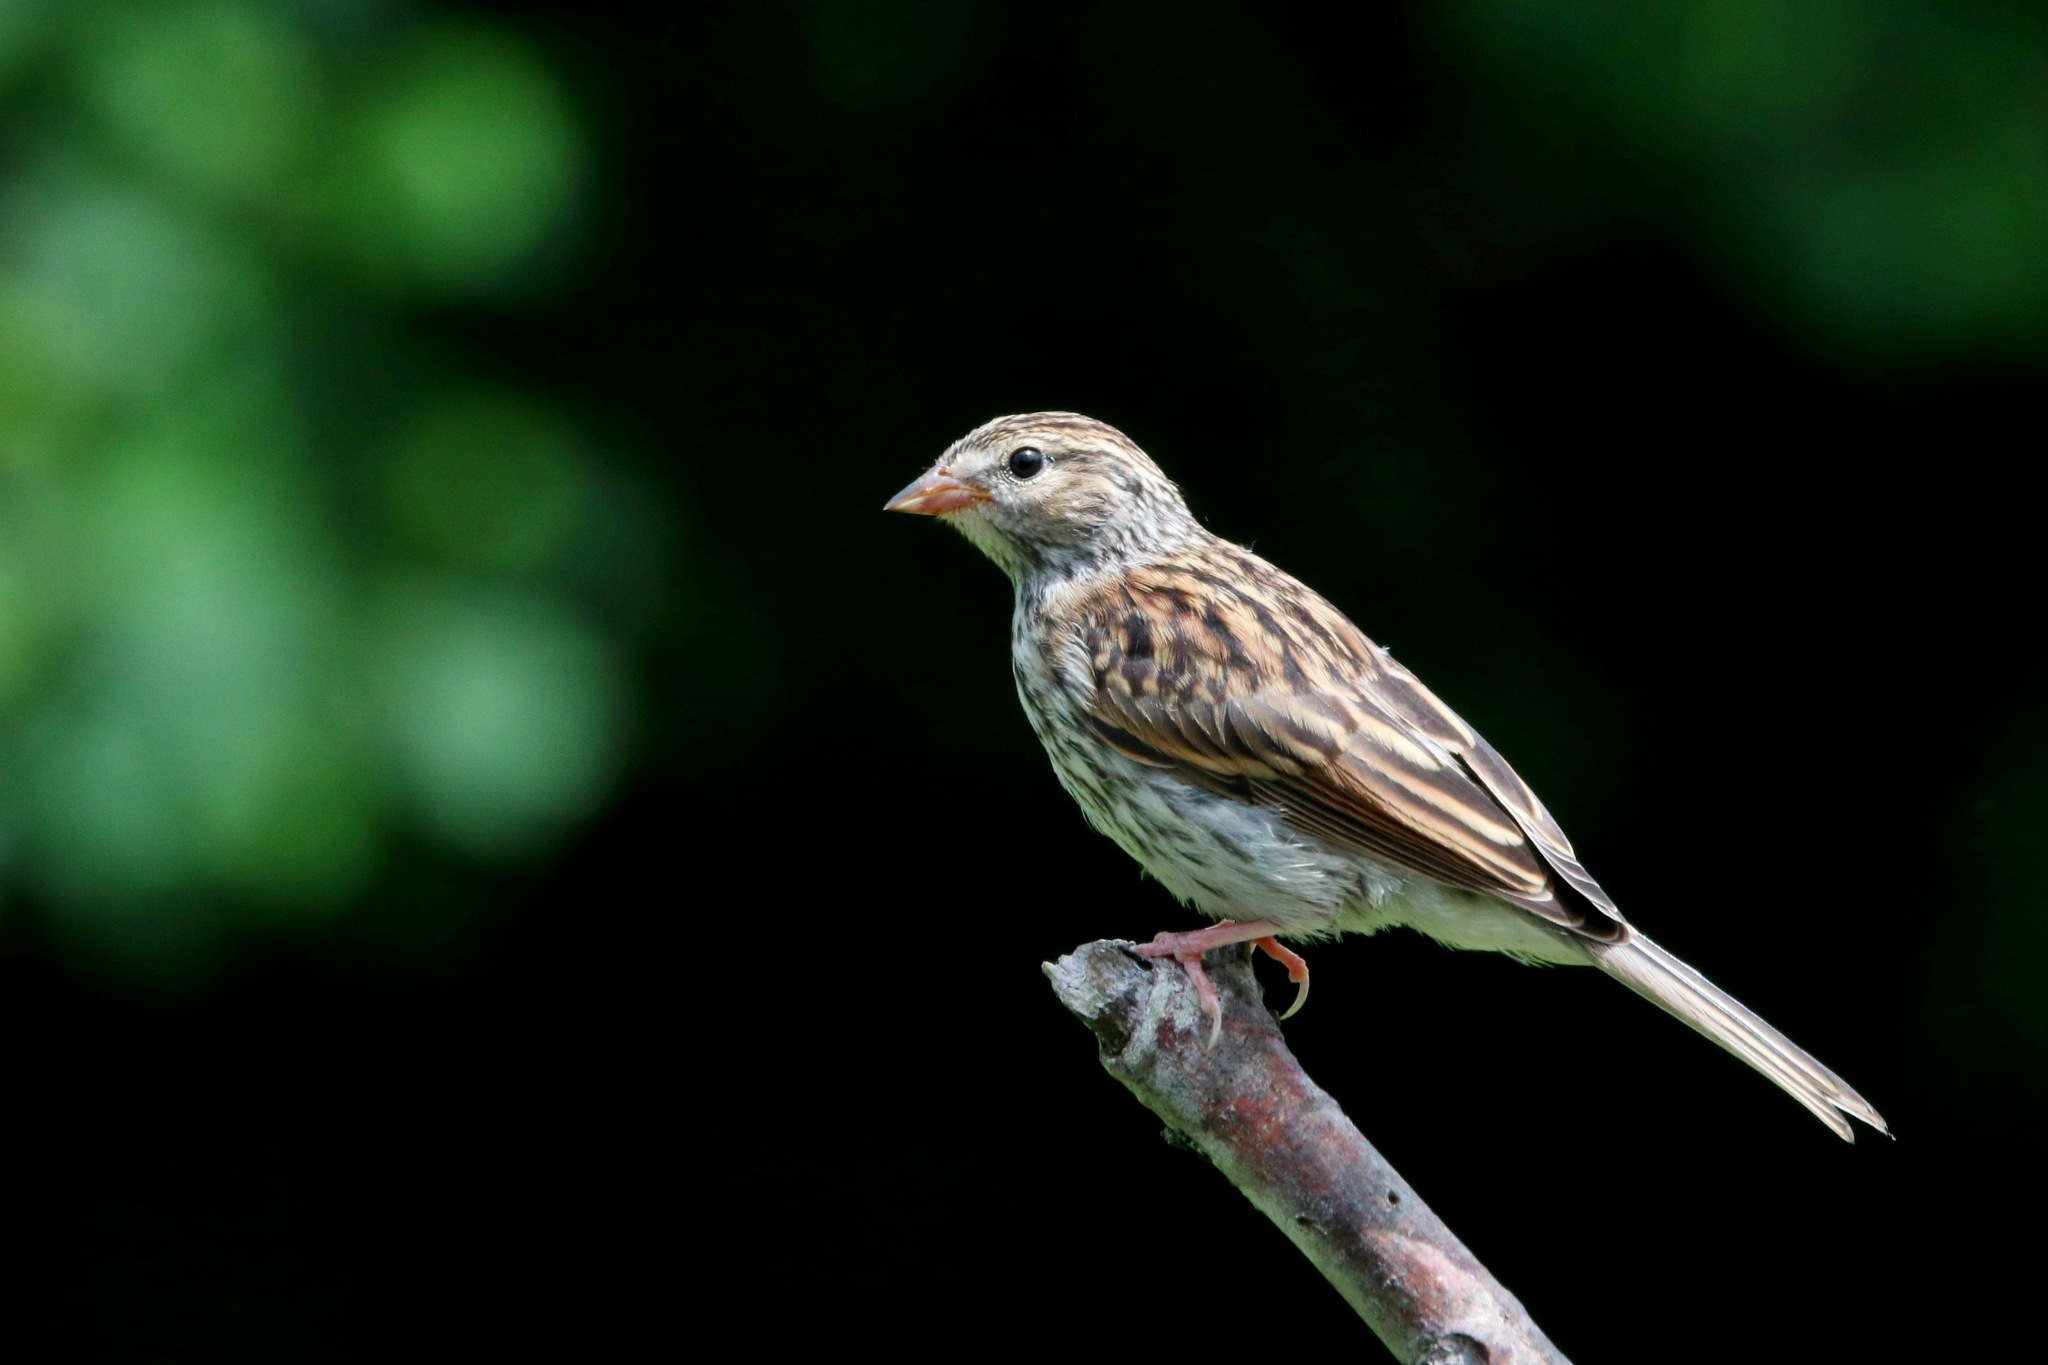 Female House Finch by Gregory Kehle